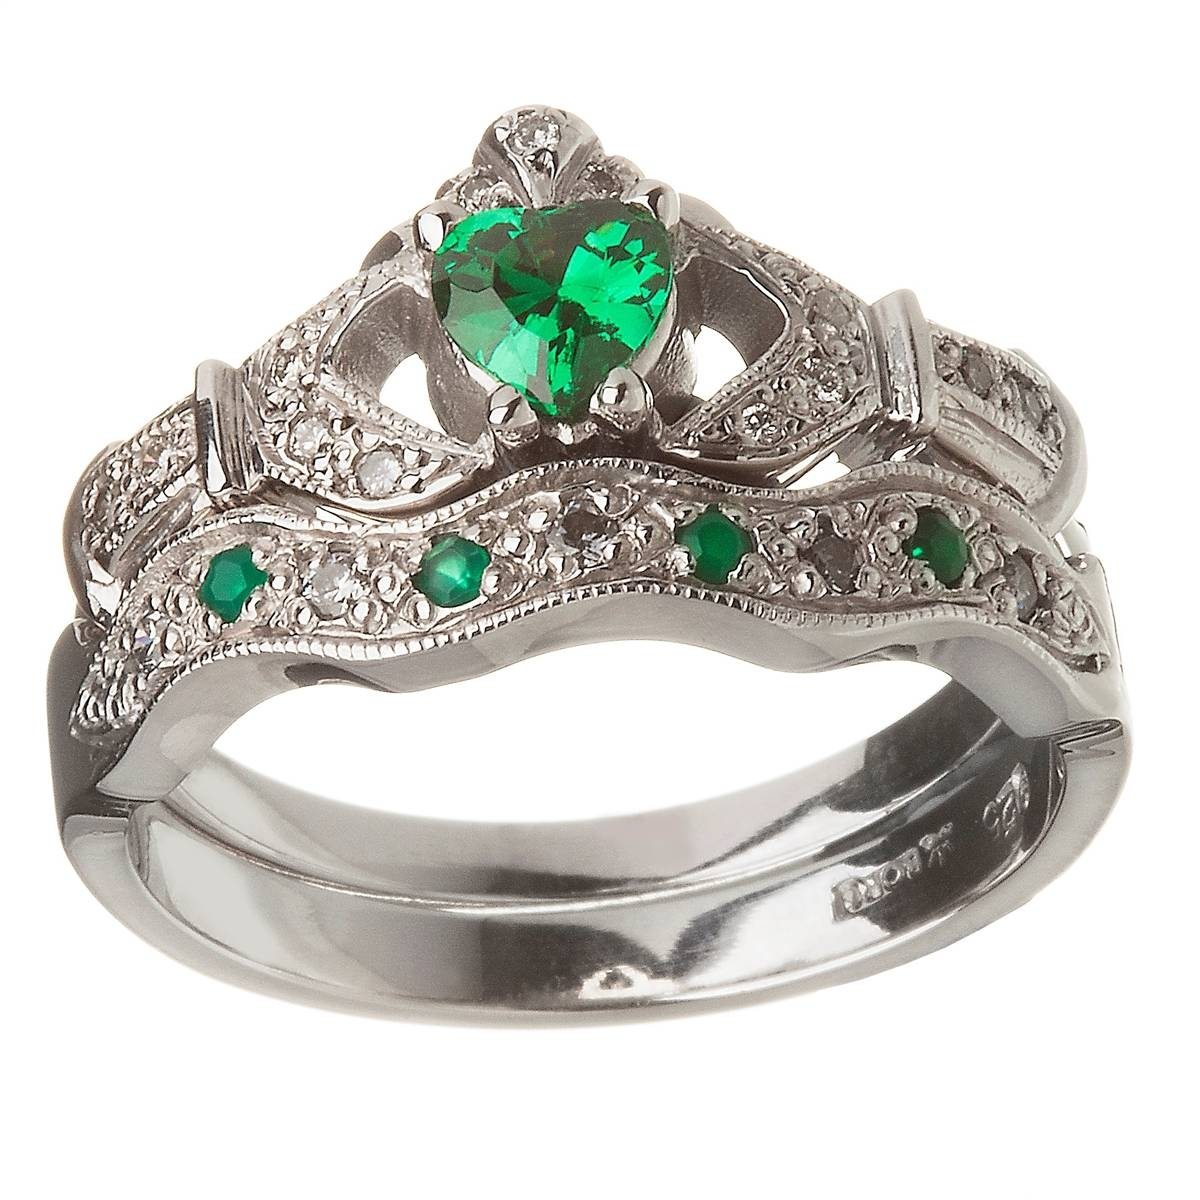 14K White Gold Emerald Set Heart Claddagh Ring & Wedding Ring Set Regarding Claddagh Rings Engagement Diamond (View 5 of 15)